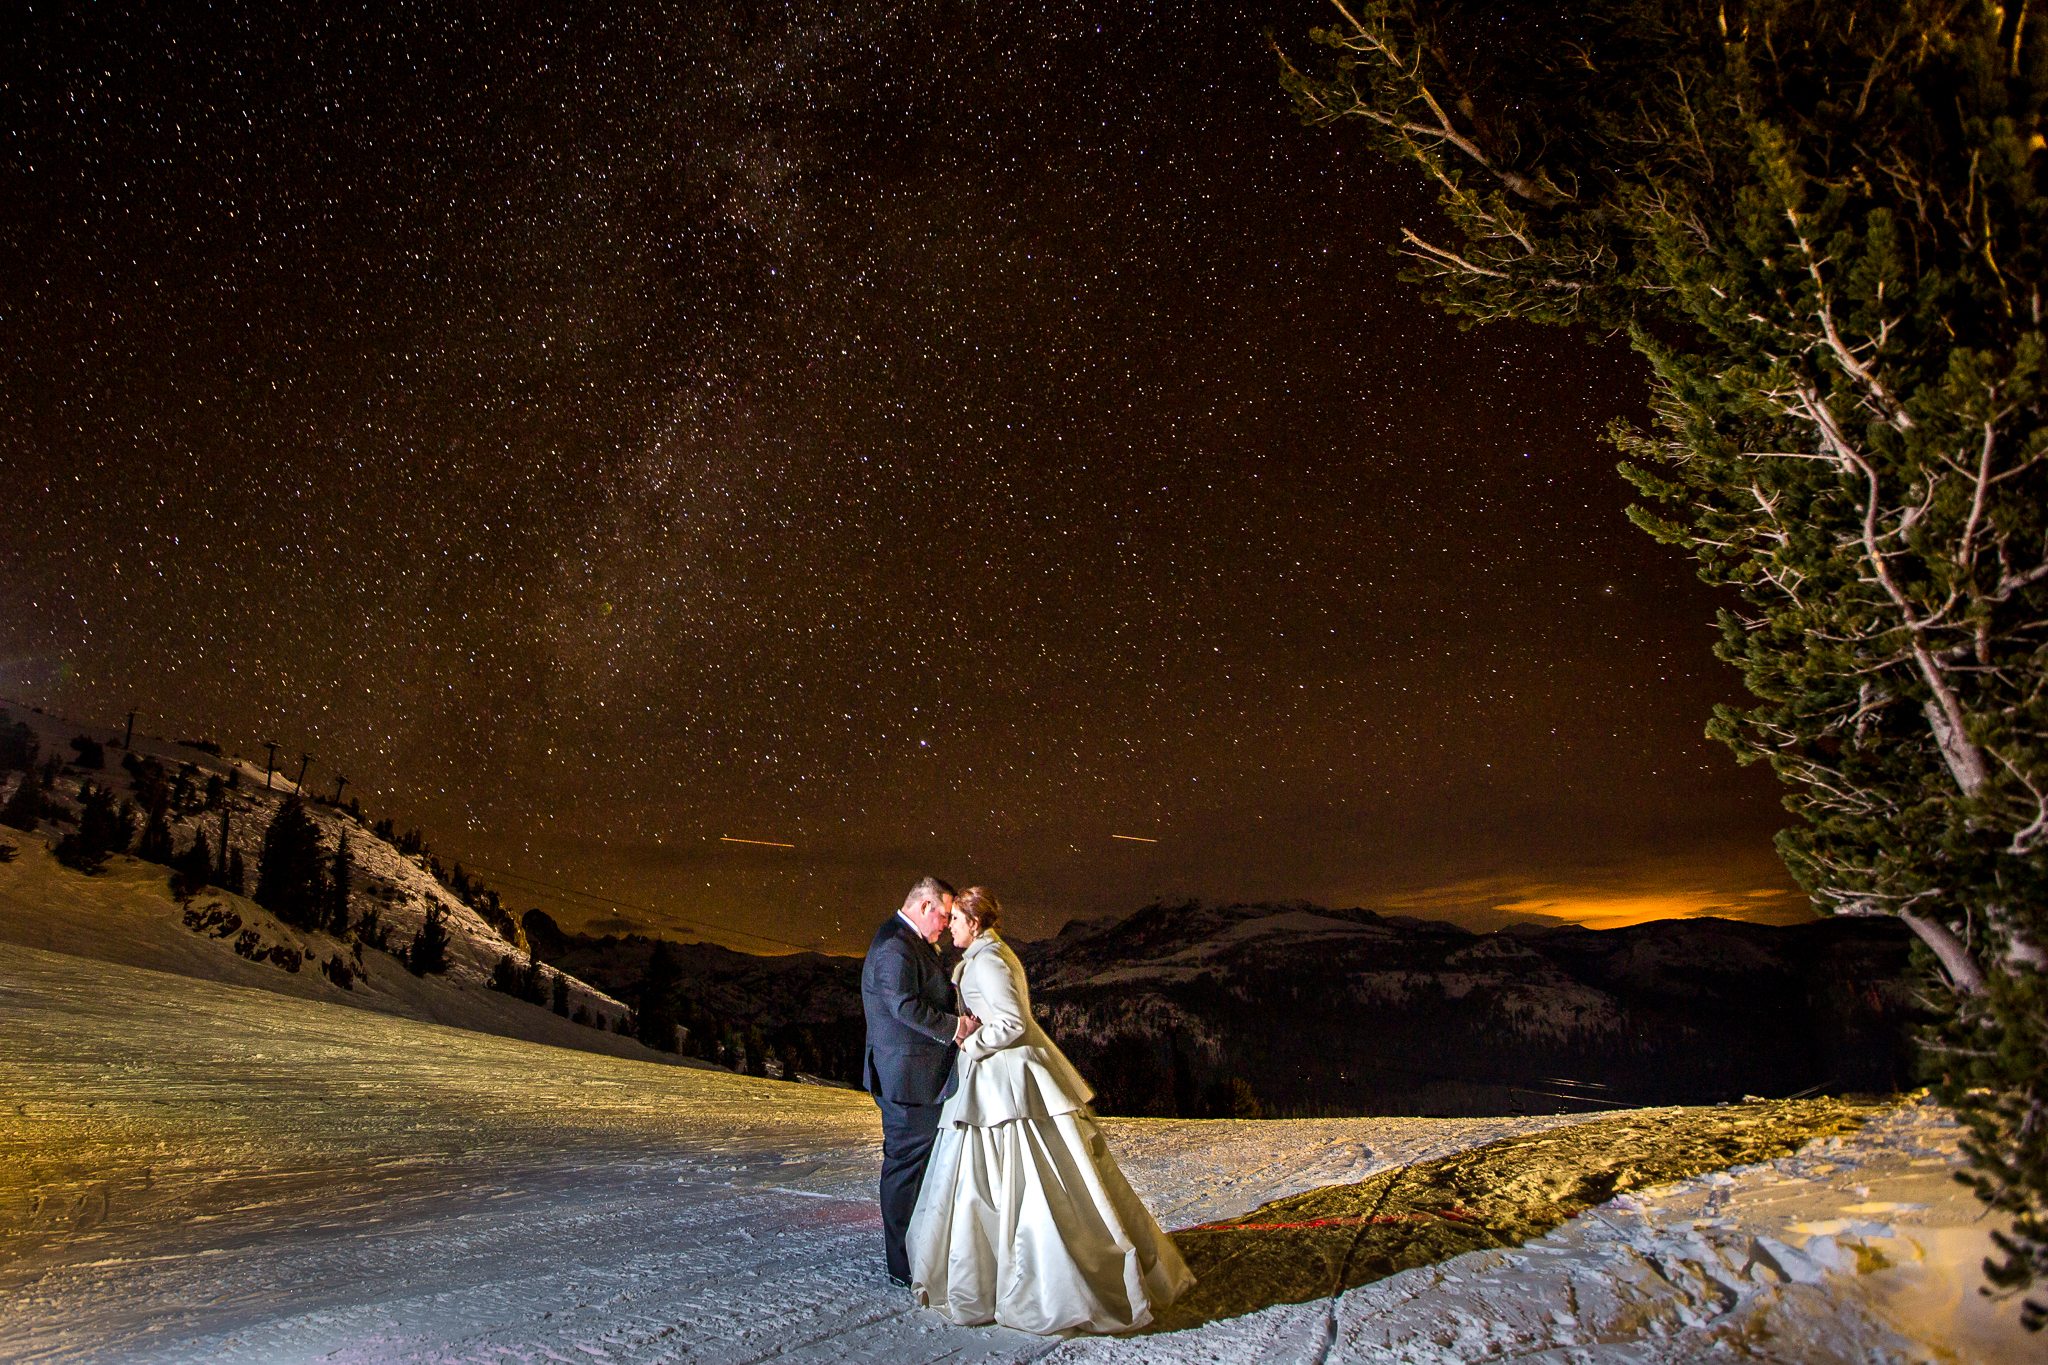 Katherine and her husband at Mammoth Lakes, CA during their wedding in December 2015.